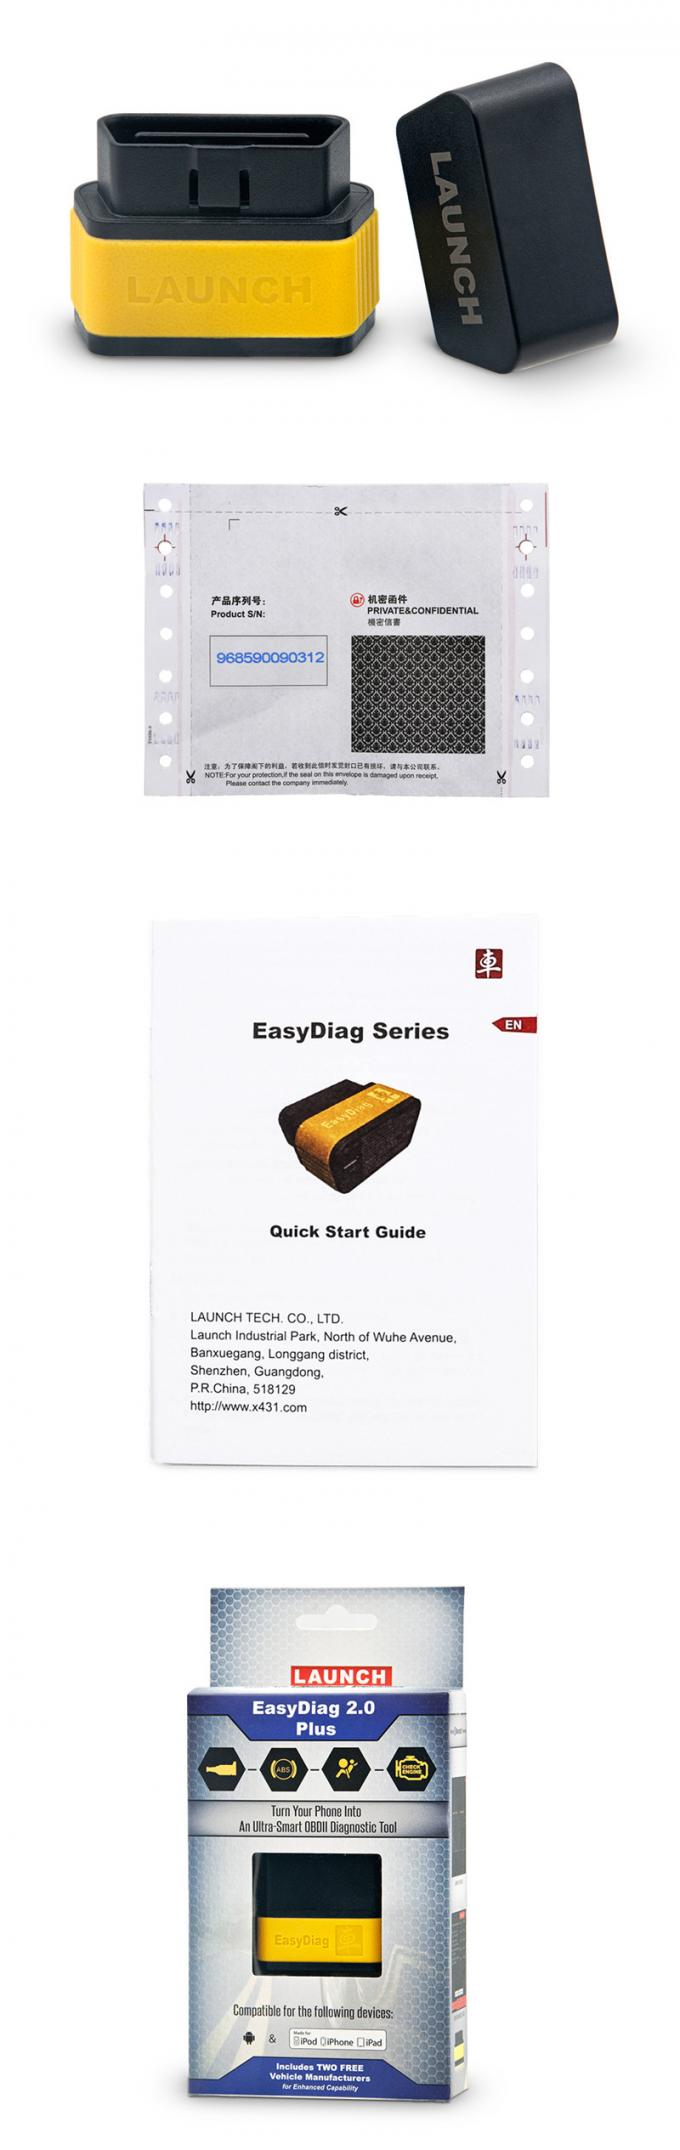 X431 EasyDiag 2.0 LAUNCH EasyDiag 2.0 Plus Obd2 Diagnostics Scanner Tool For Android/IOS X431 EasyDiag 2.0 With Blueto